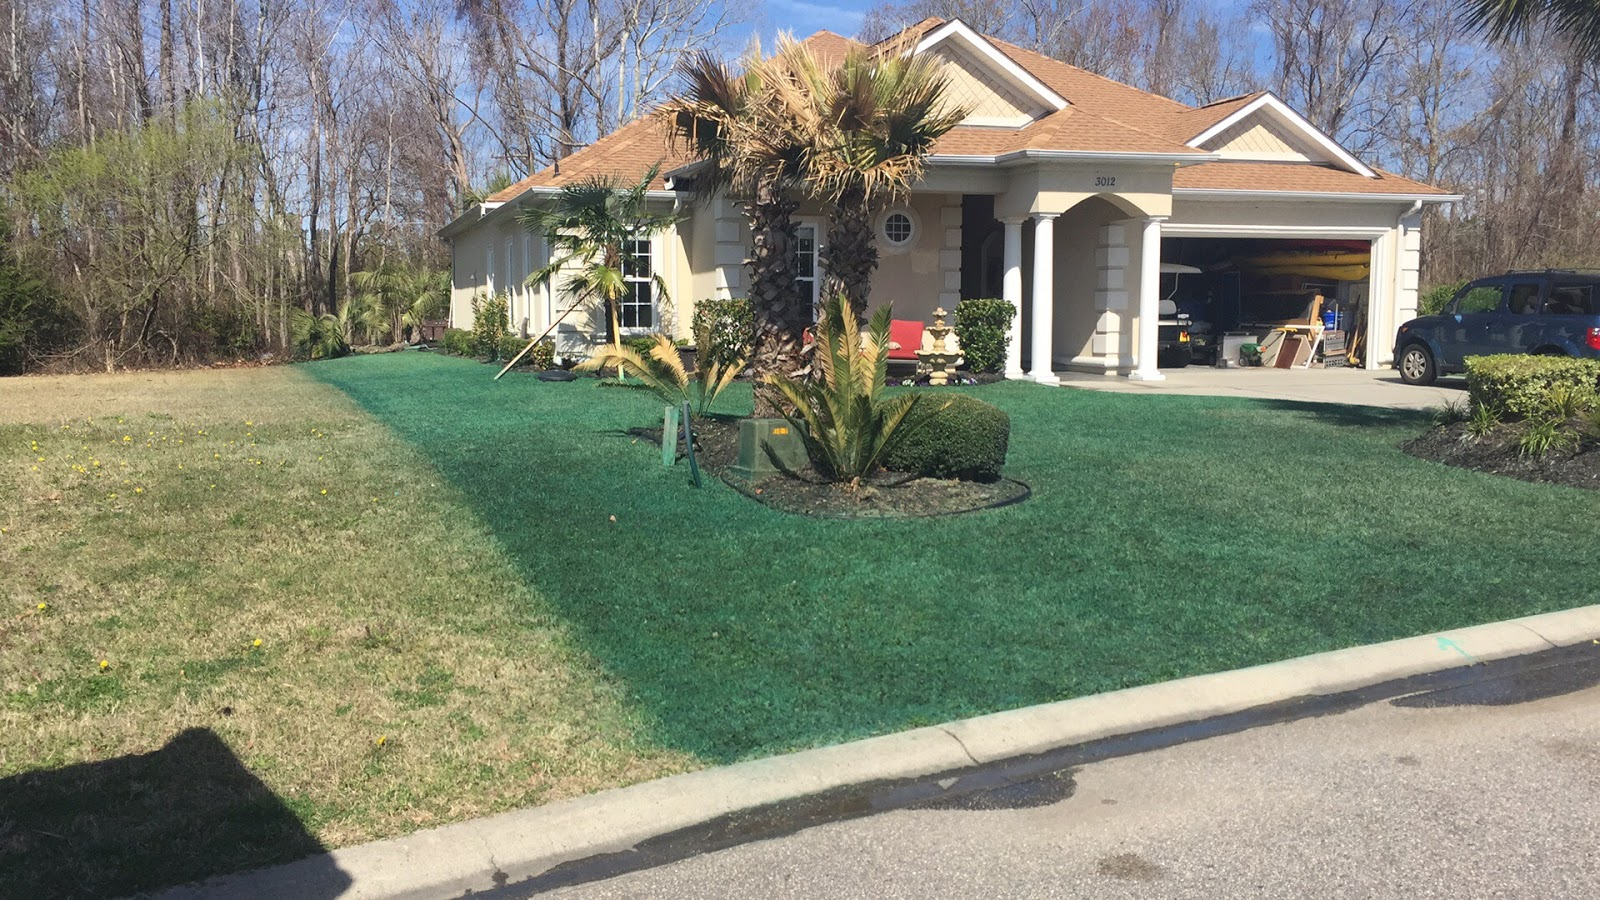 Myrtle Beach South Carolina Lawn Care Service